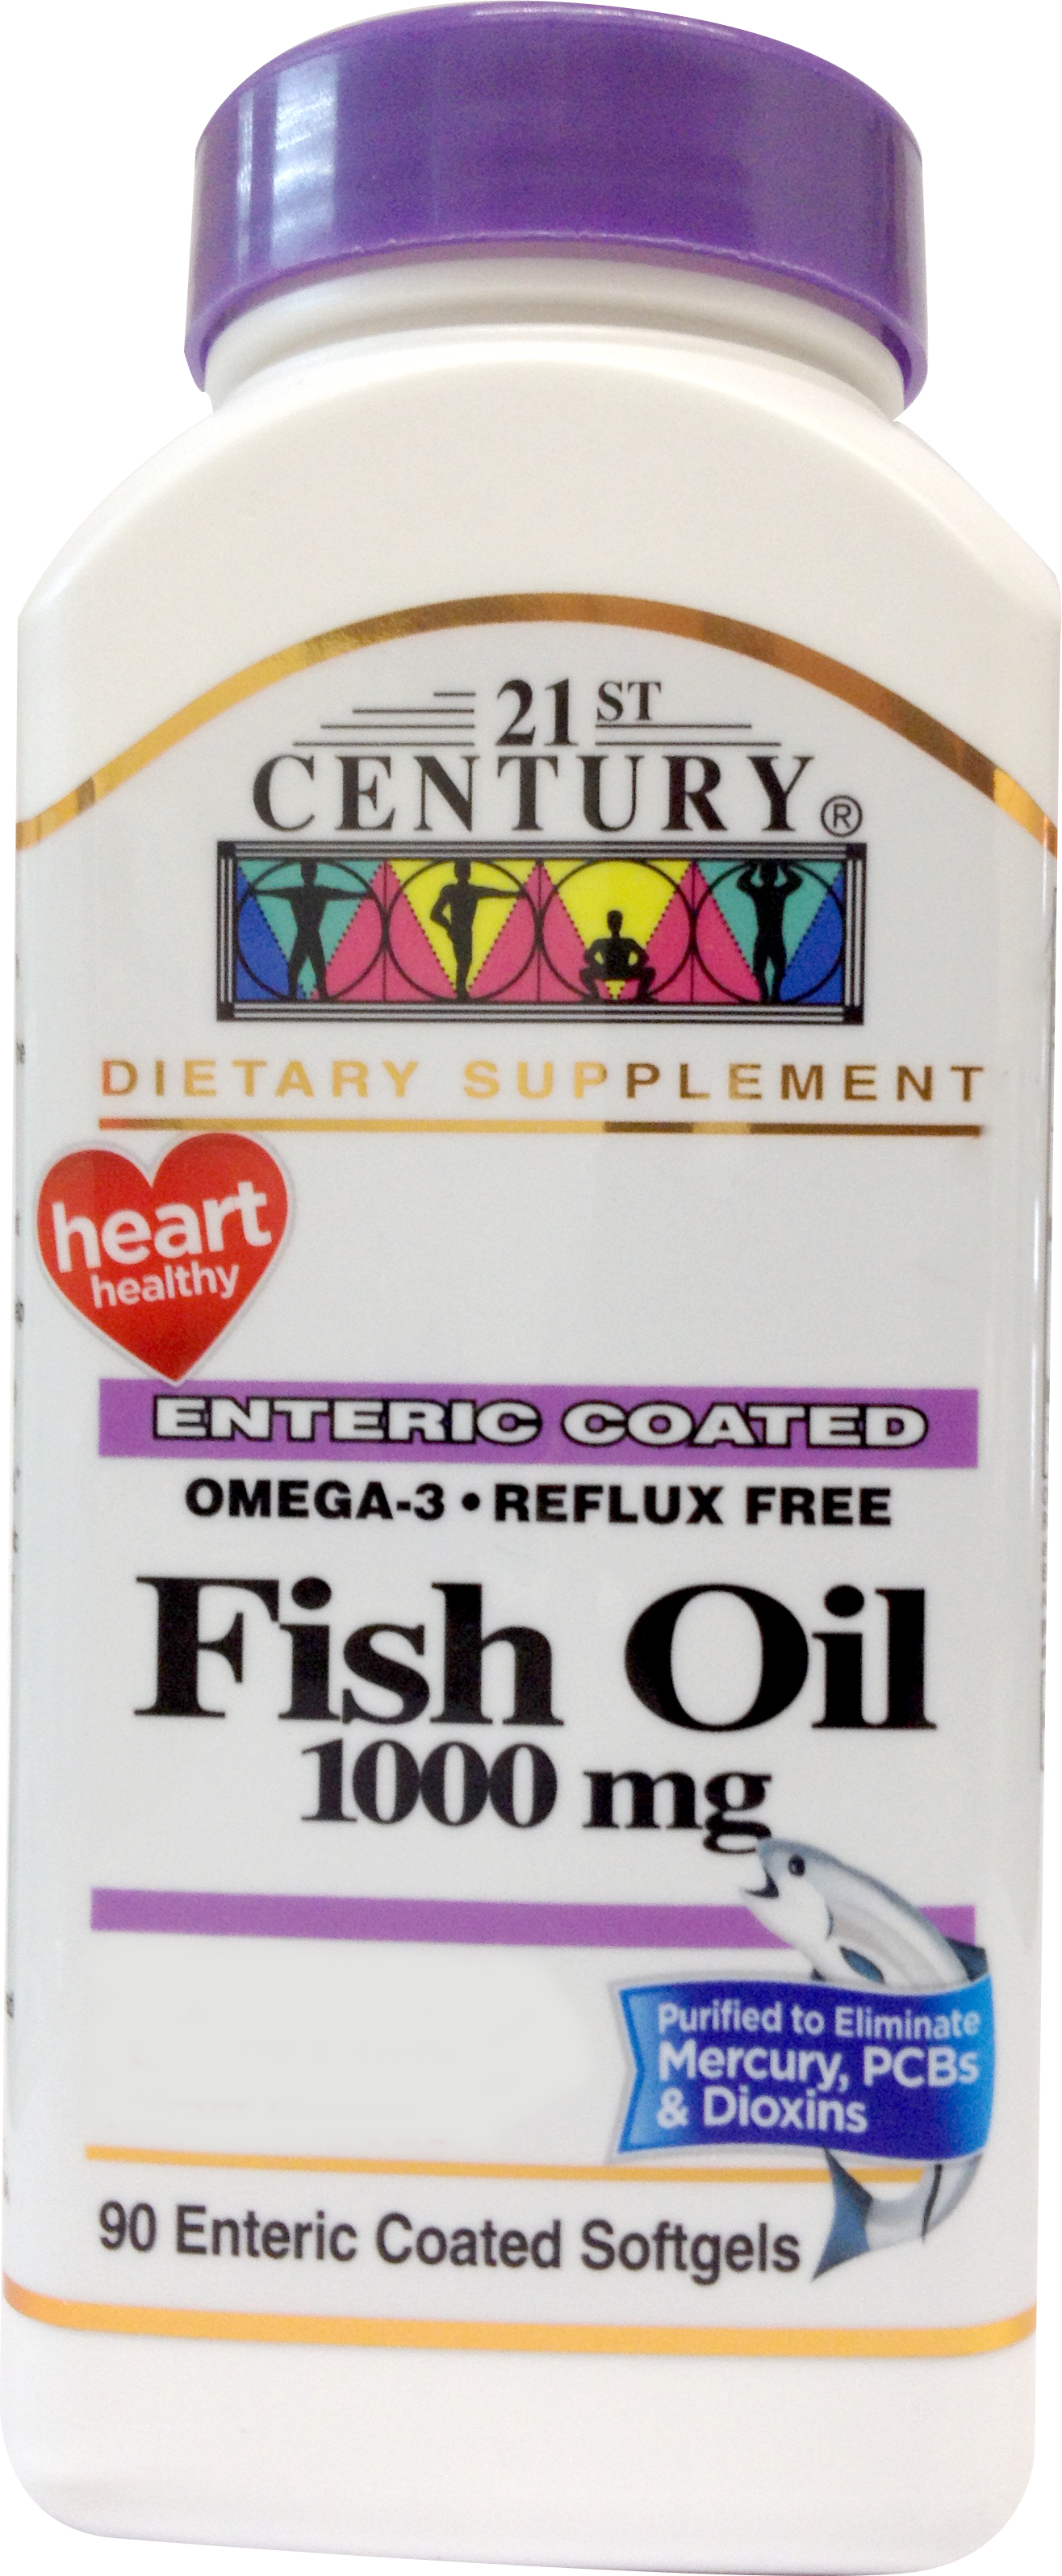 FISH OIL, OMEGA -3 1000MG, odourless, No fishy smell